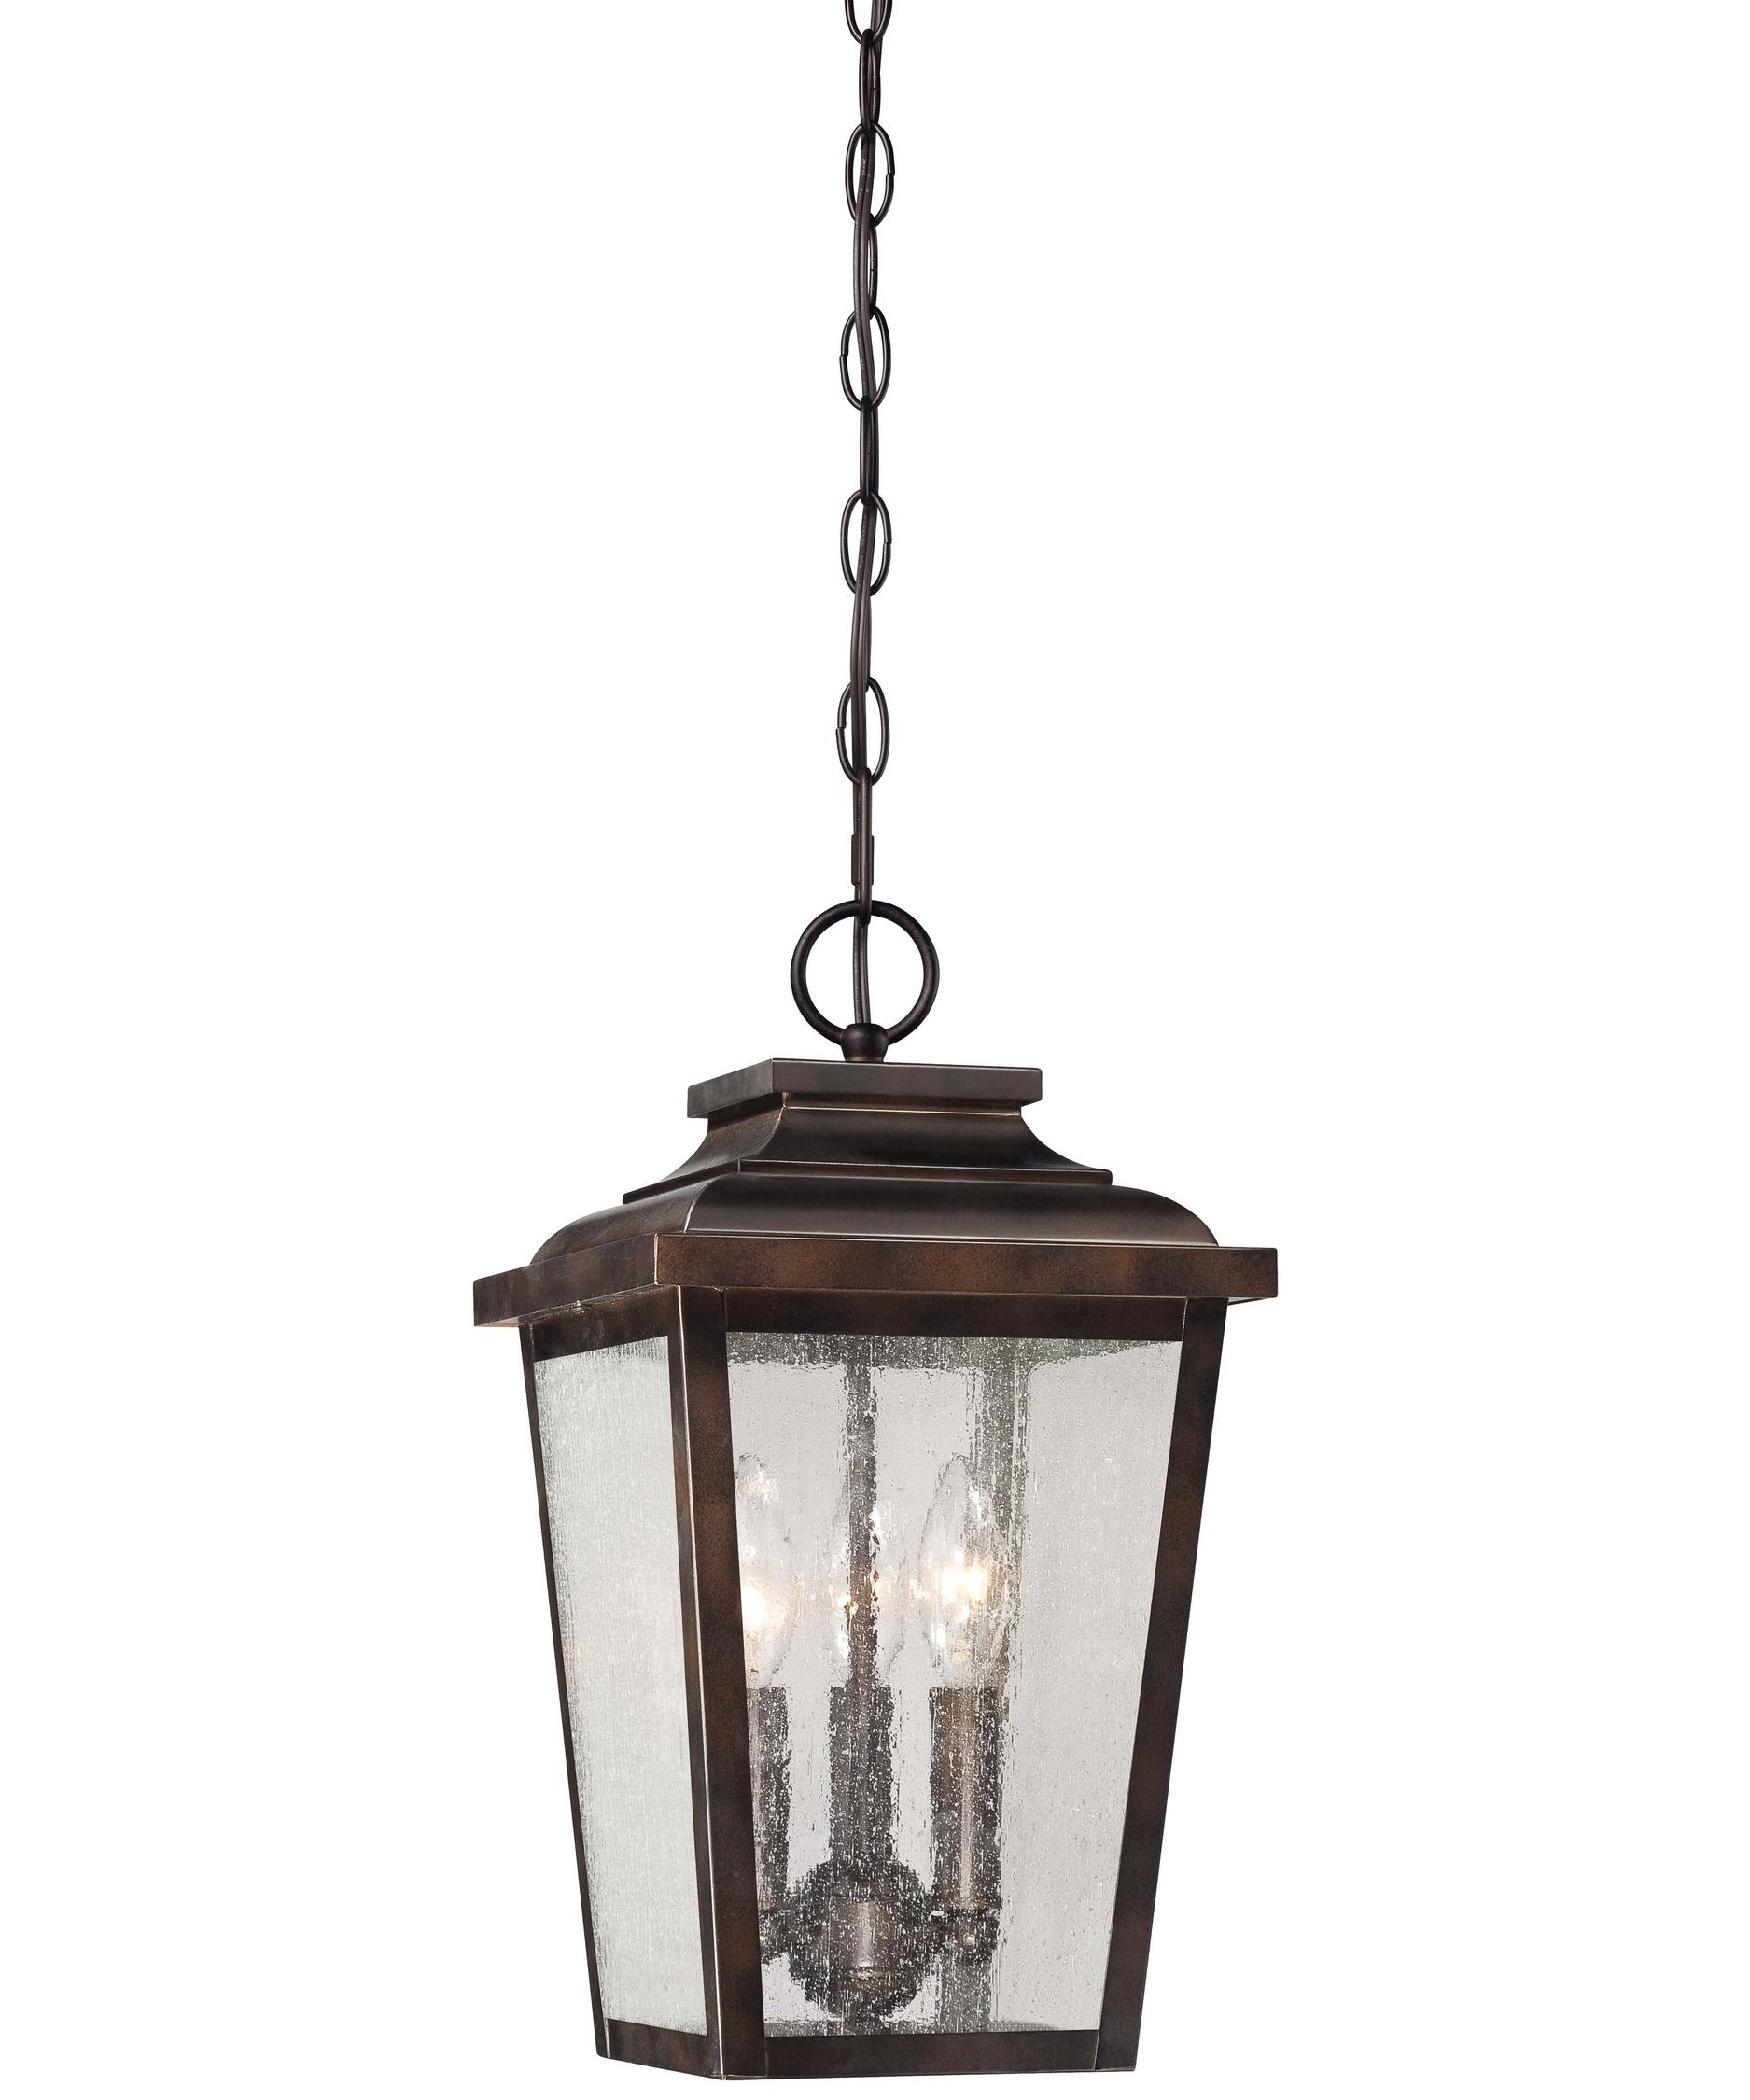 Vintage Outdoor Hanging Lights Inside Preferred Best Exterior Pendant Light Photos Interior Design Ideas Regarding (Gallery 6 of 20)